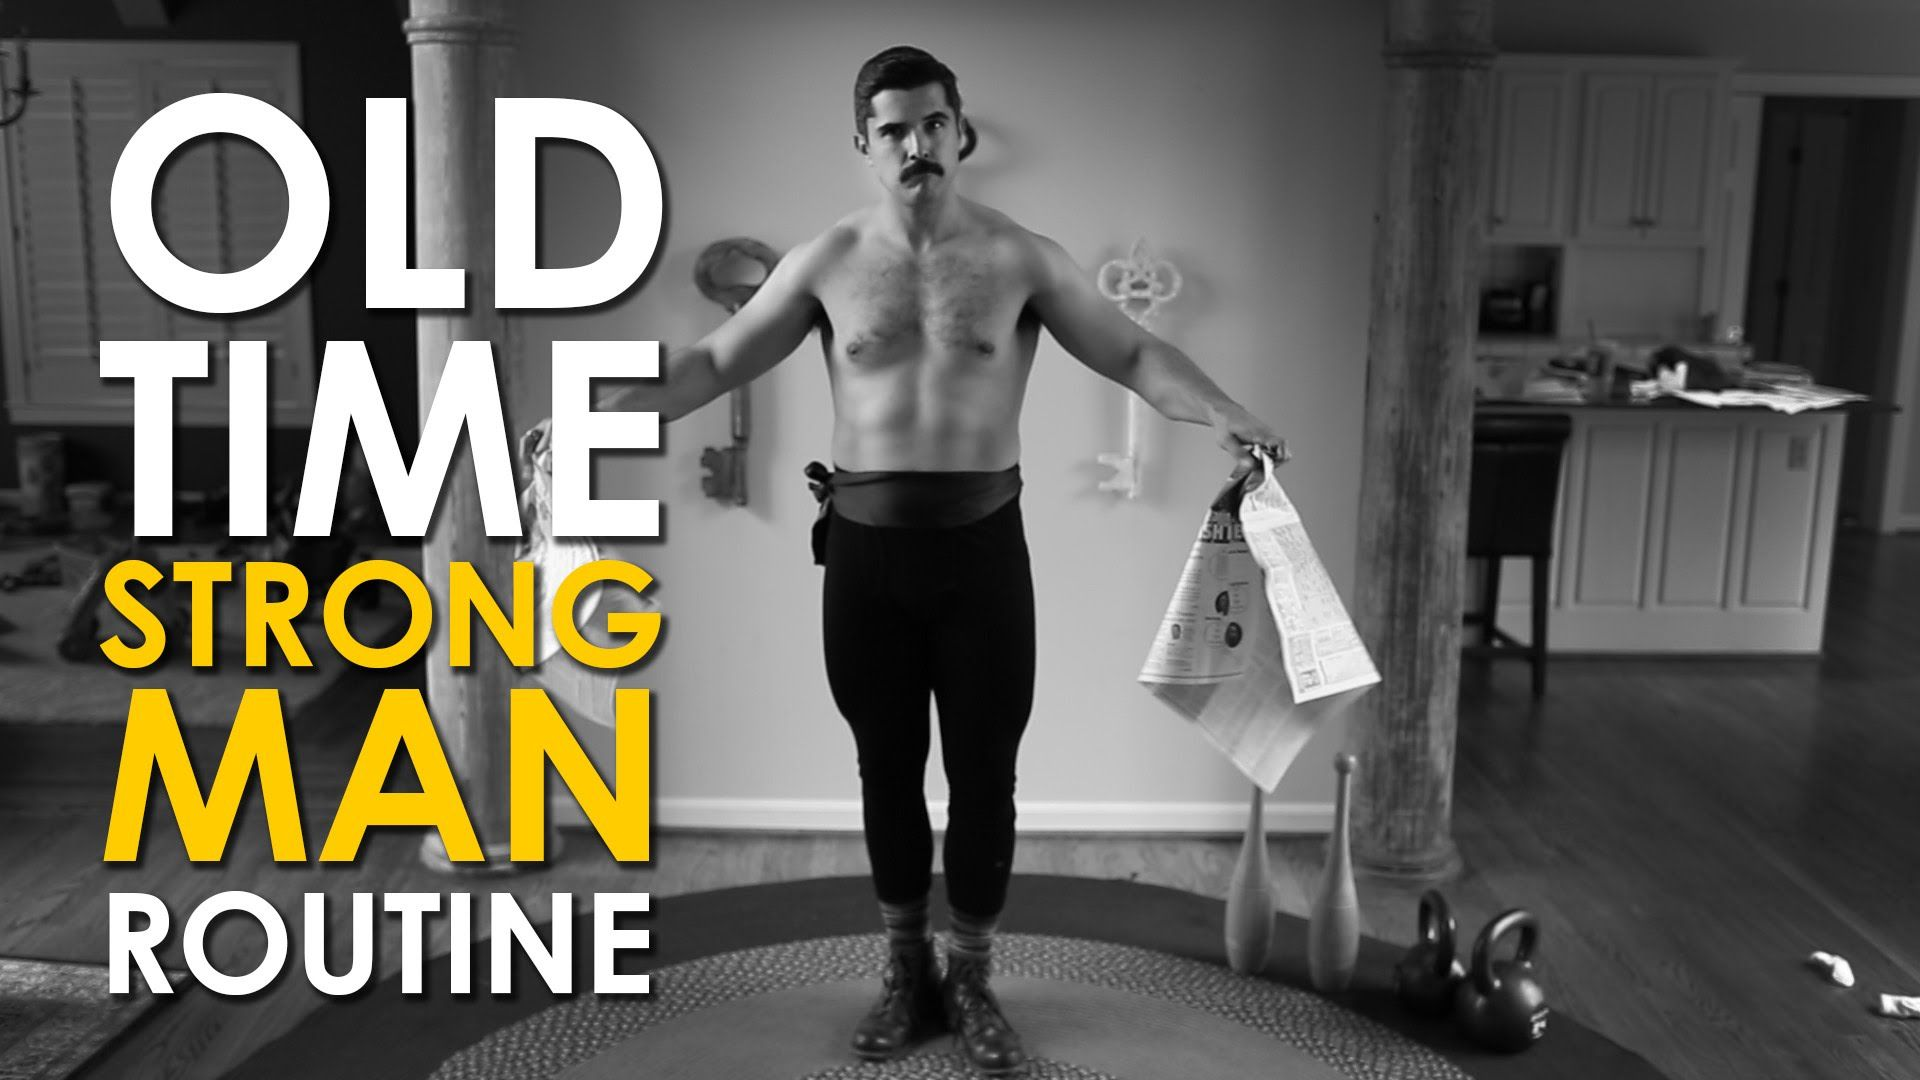 Old Time Strongman Morning Routine The Art Of Manliness Workout Plan For Men Workout Routine Workout Plan Gym